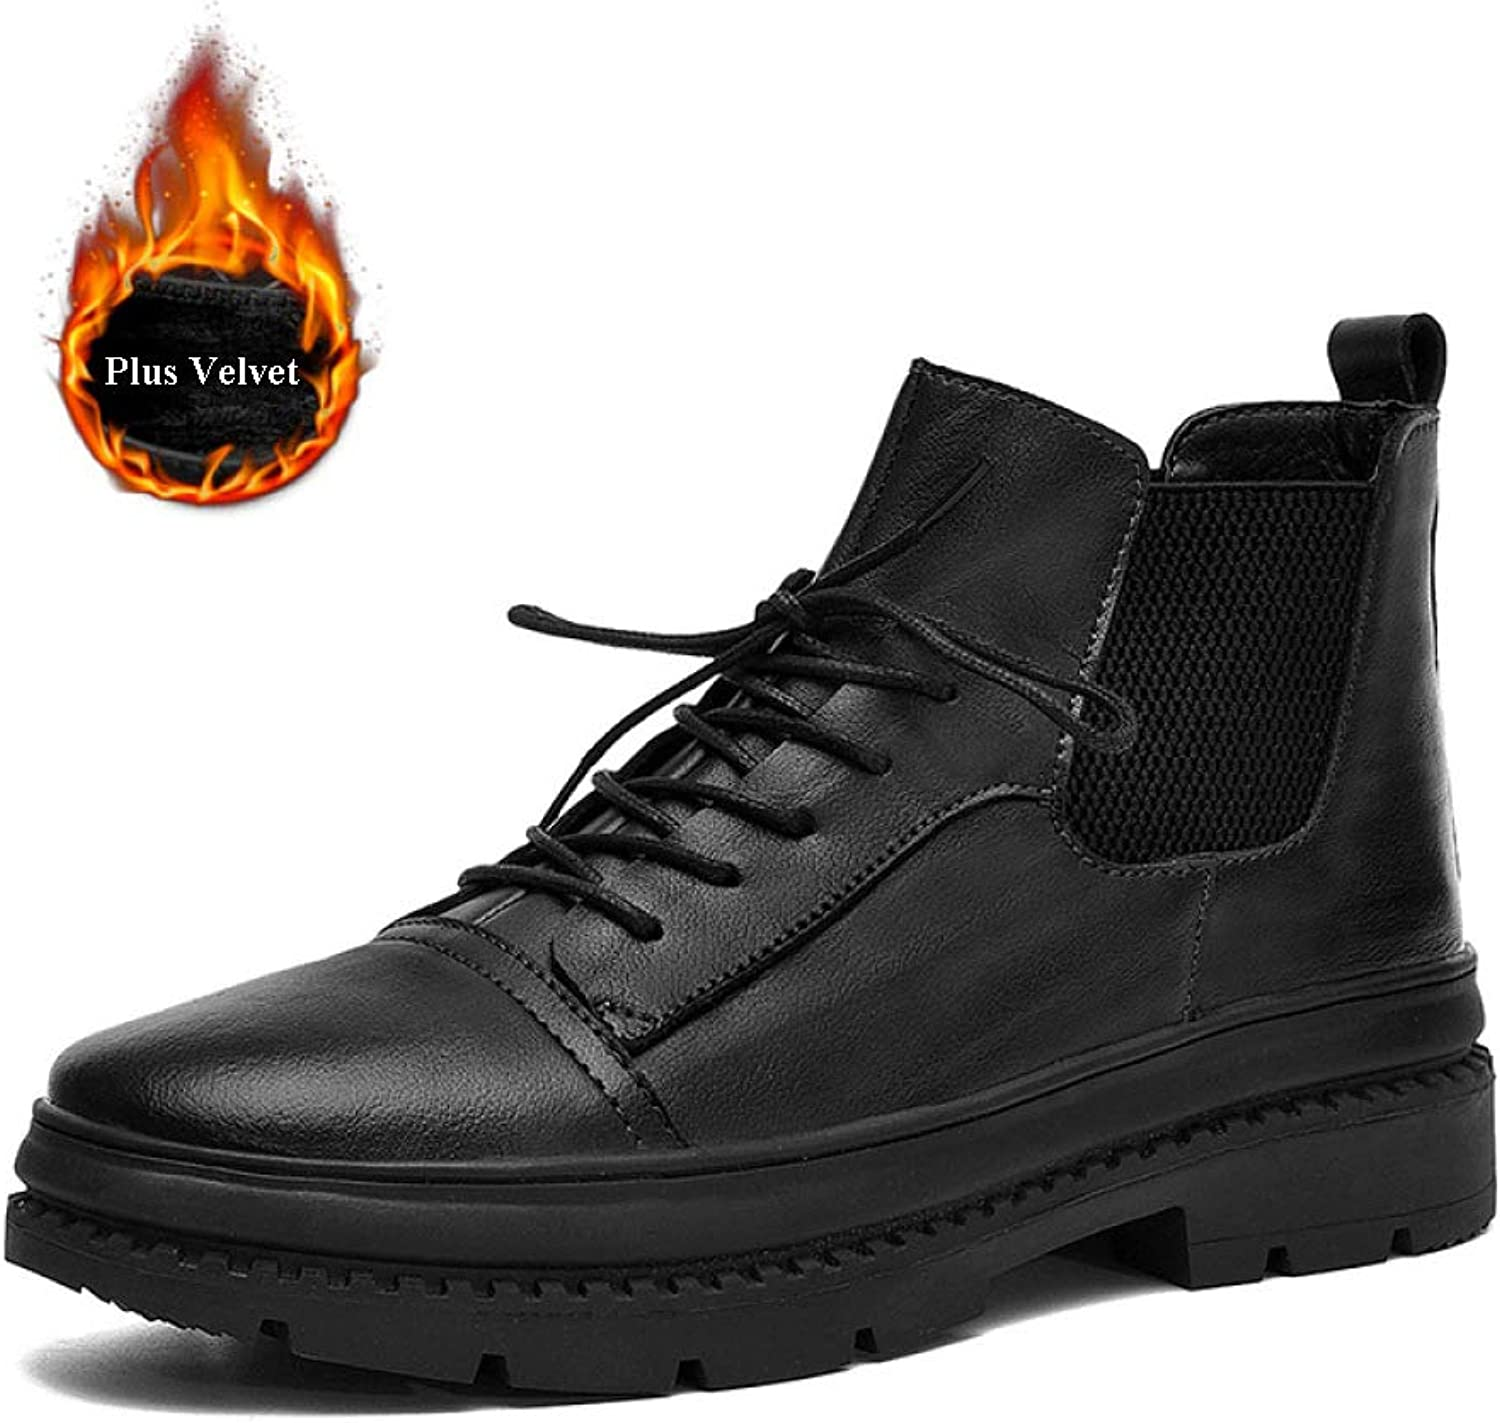 DZX Mens Winter Outdoor Casual Leather shoes British Style Lace Up Anti-Slip Luxurious Leather shoes - For Work And Walking,Black-UK8(43EUR)